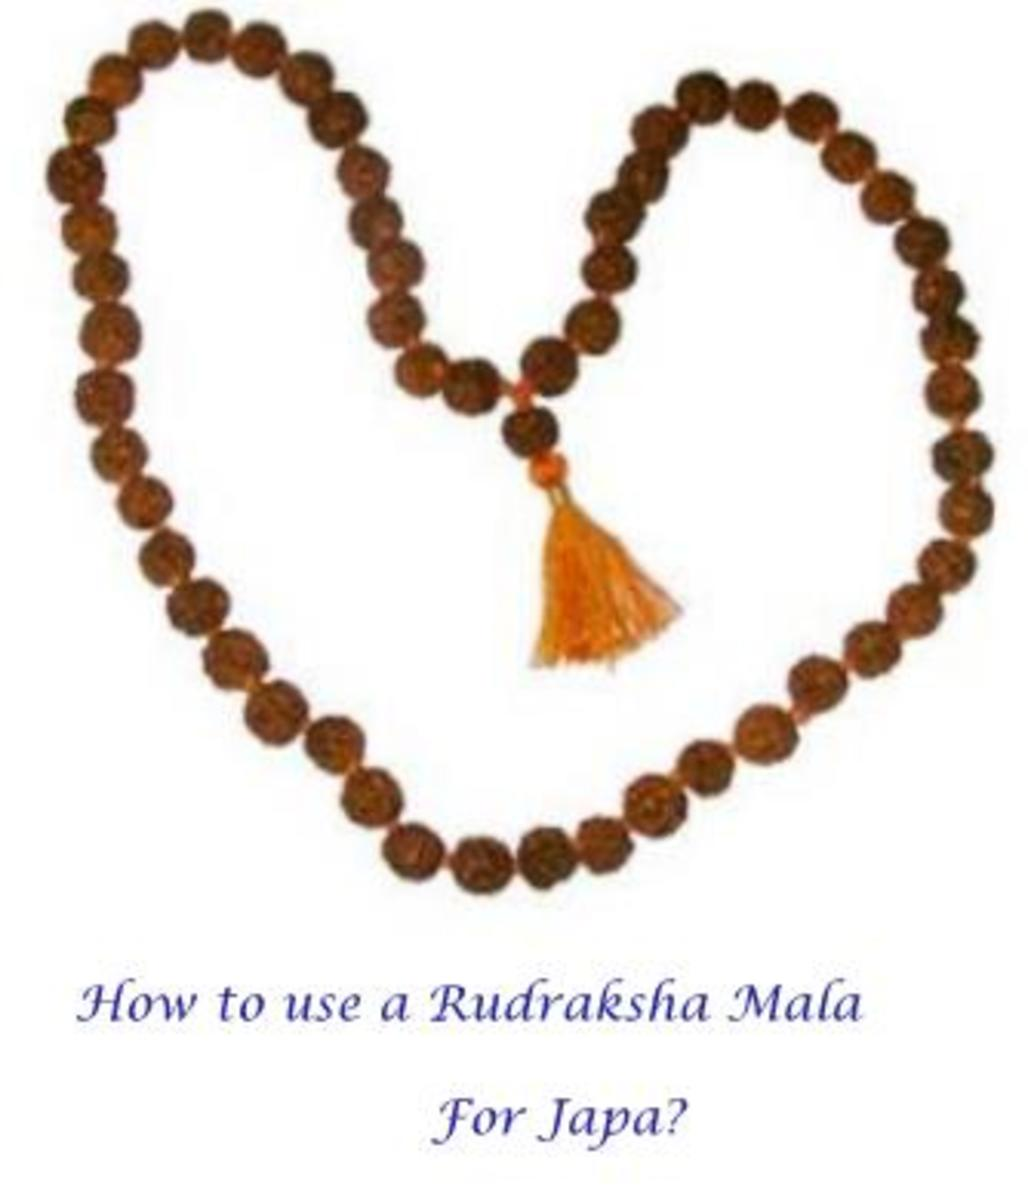 How to use Rudraksha Beads Mala (Rosary) for Meditation and Chanting mantras?